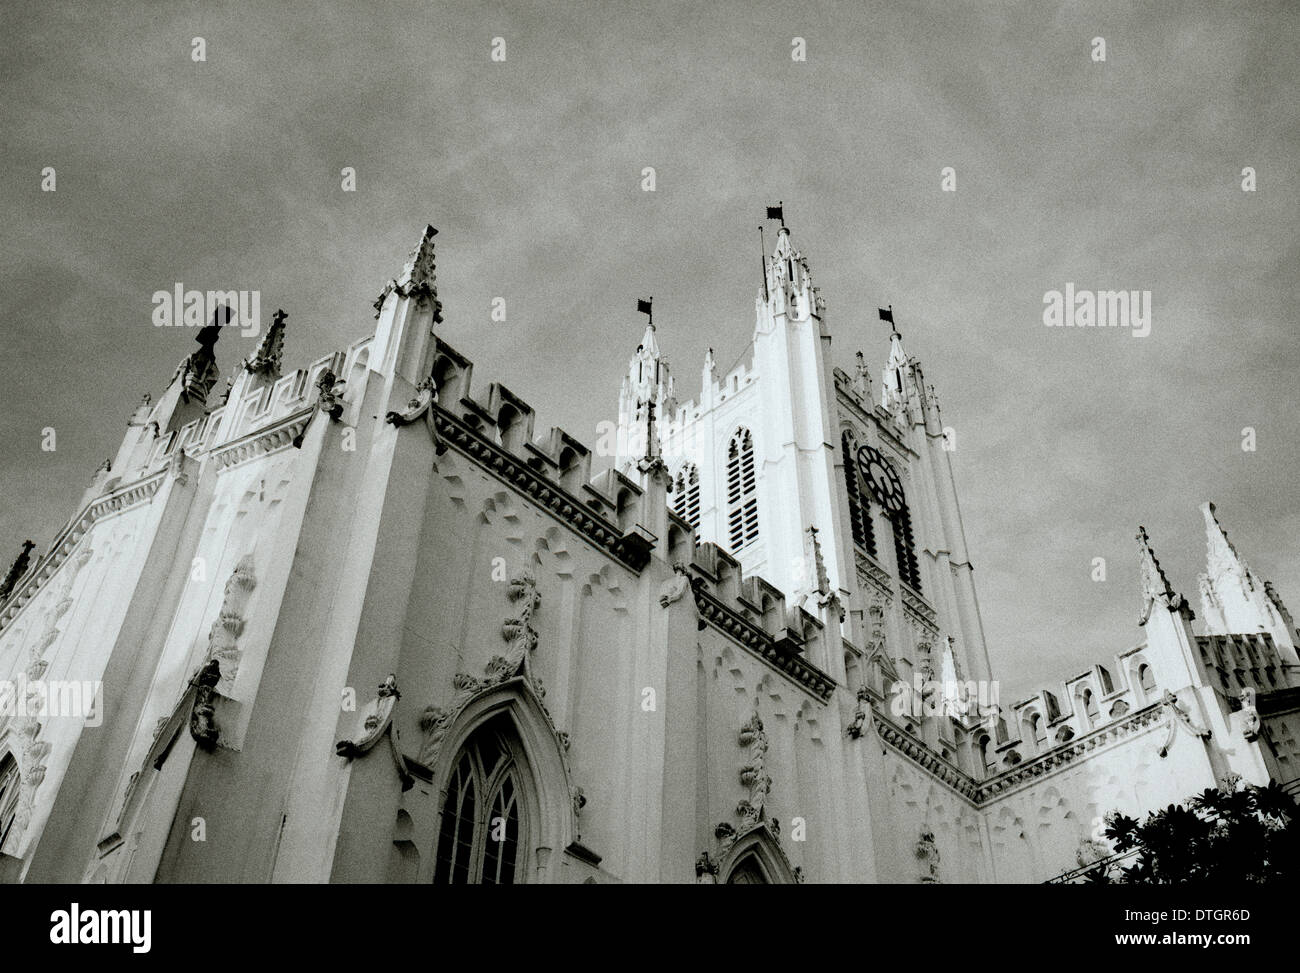 Saint Paul's Cathedral Kolkata Calcutta in West Bengal in India in South Asia. Paul Anglican Church Religion Religious Building Architecture Travel - Stock Image